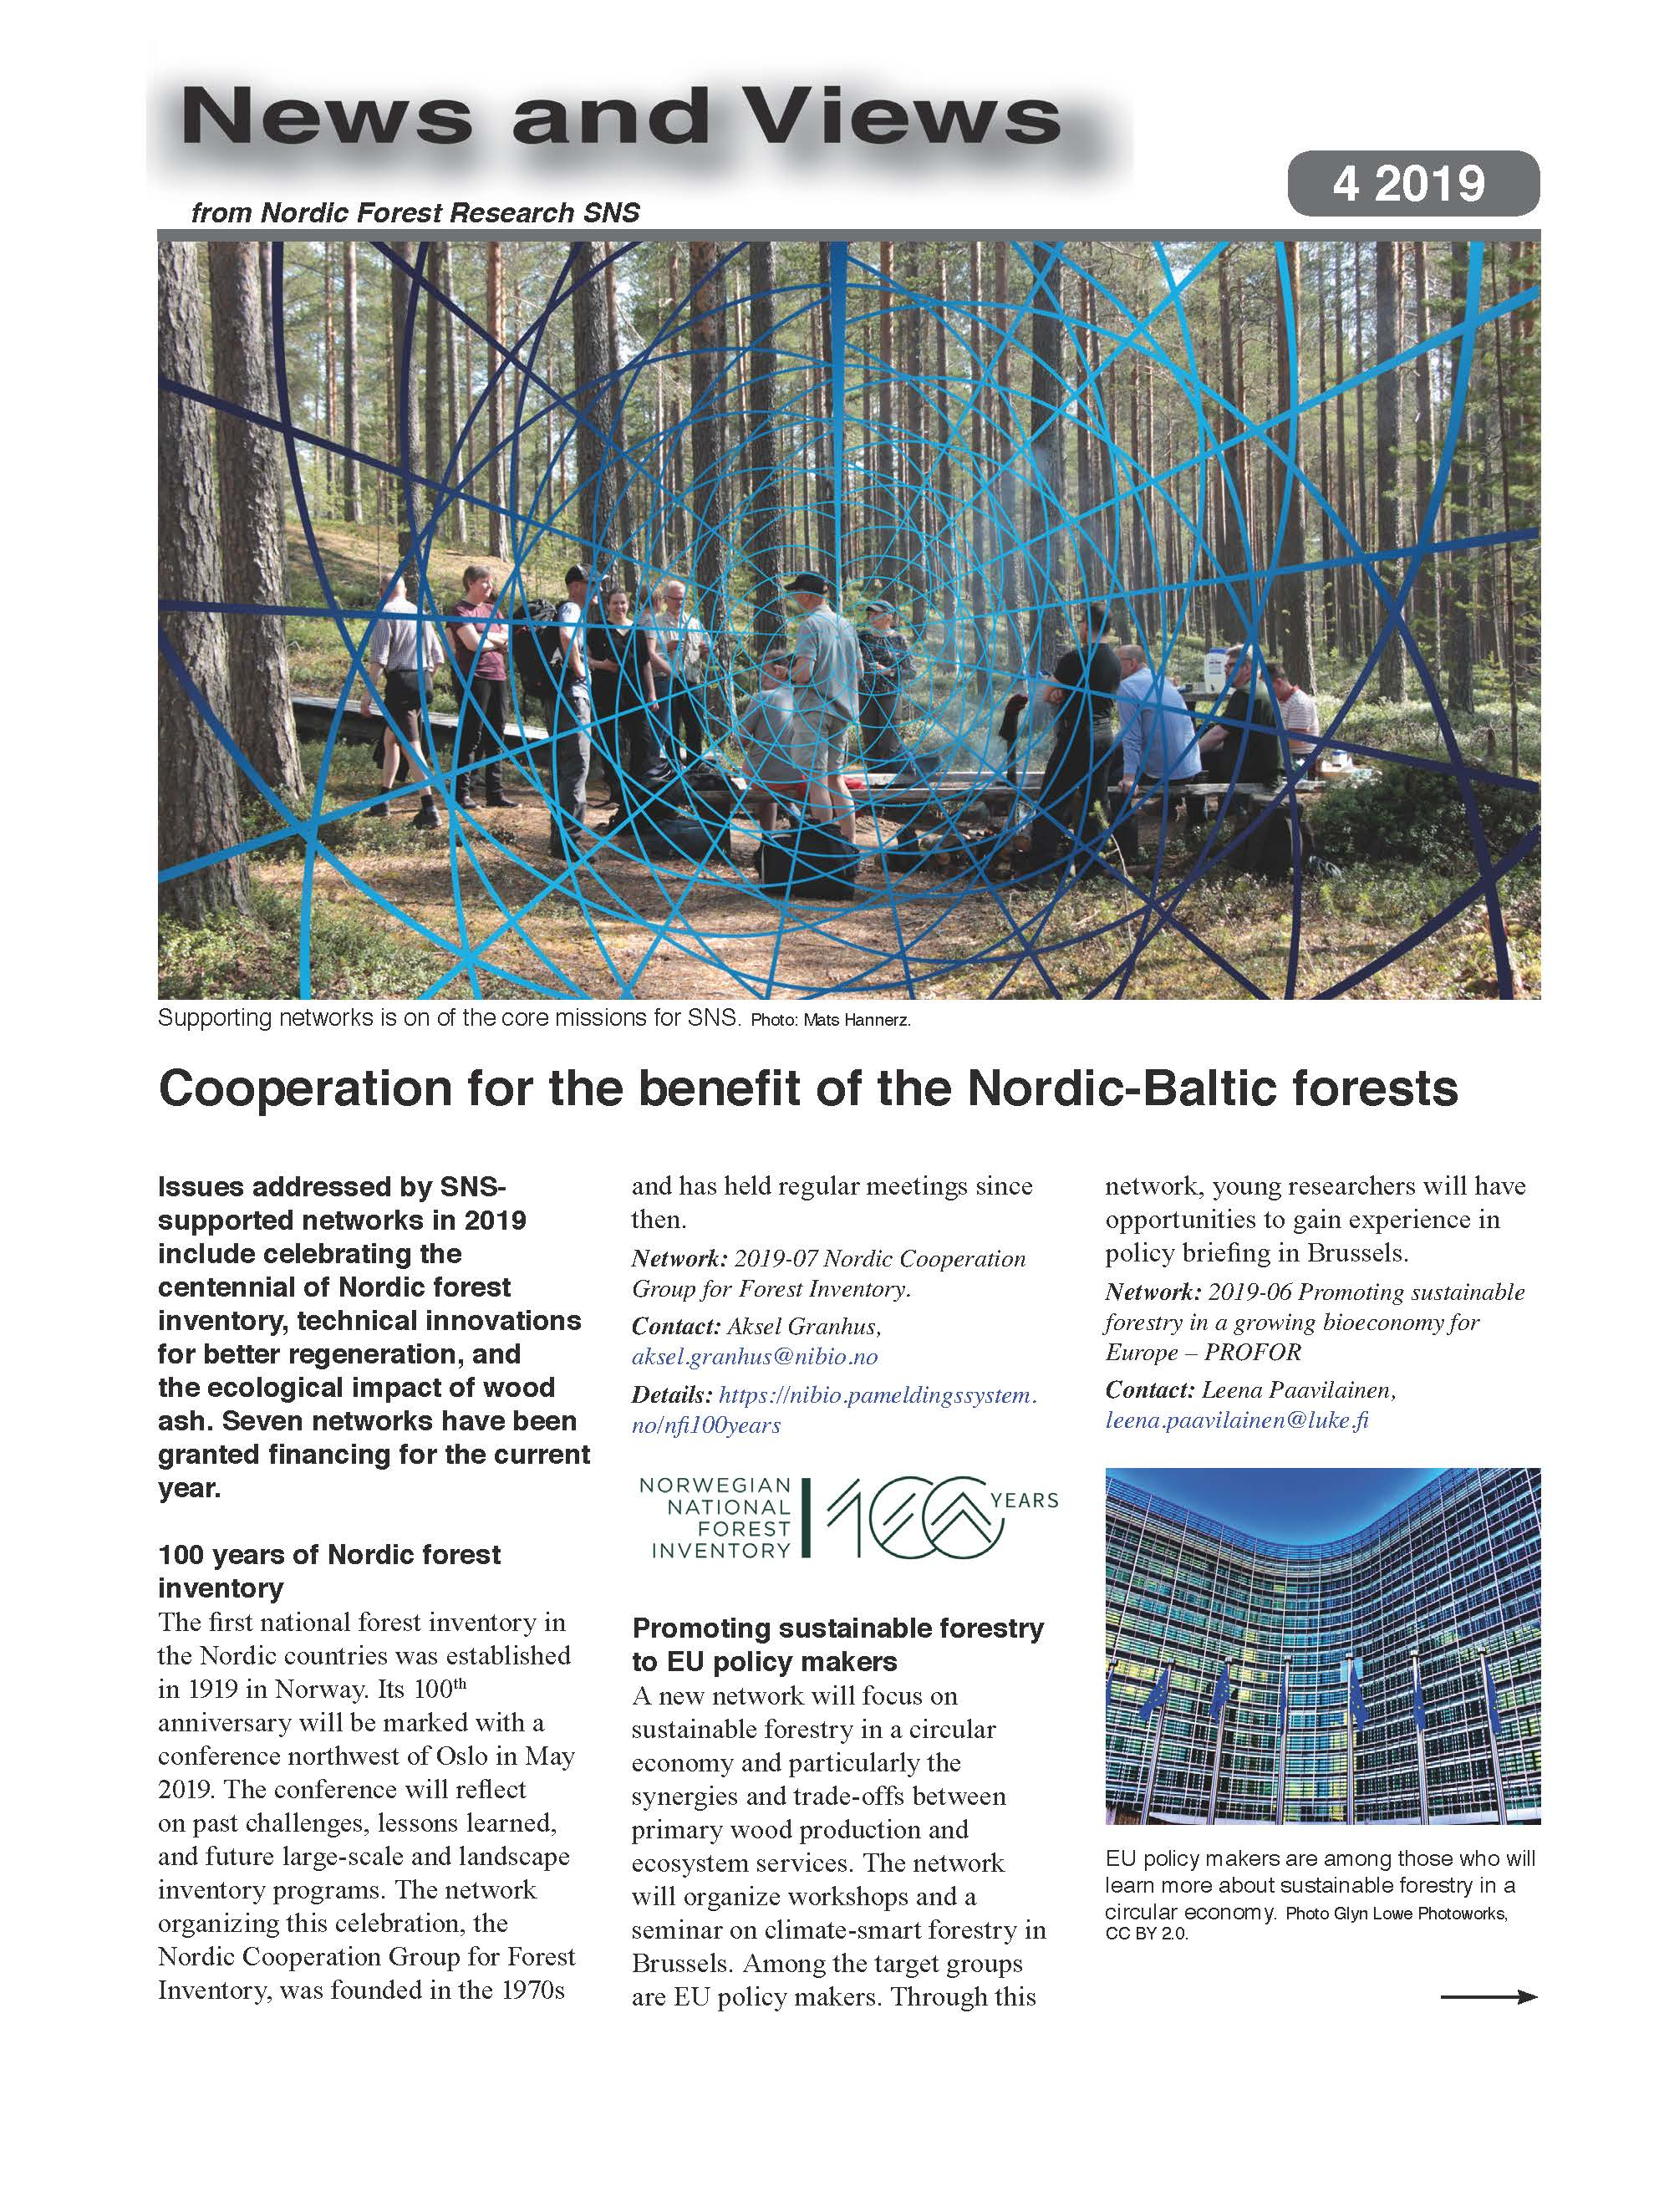 SNS Nordic forest research news